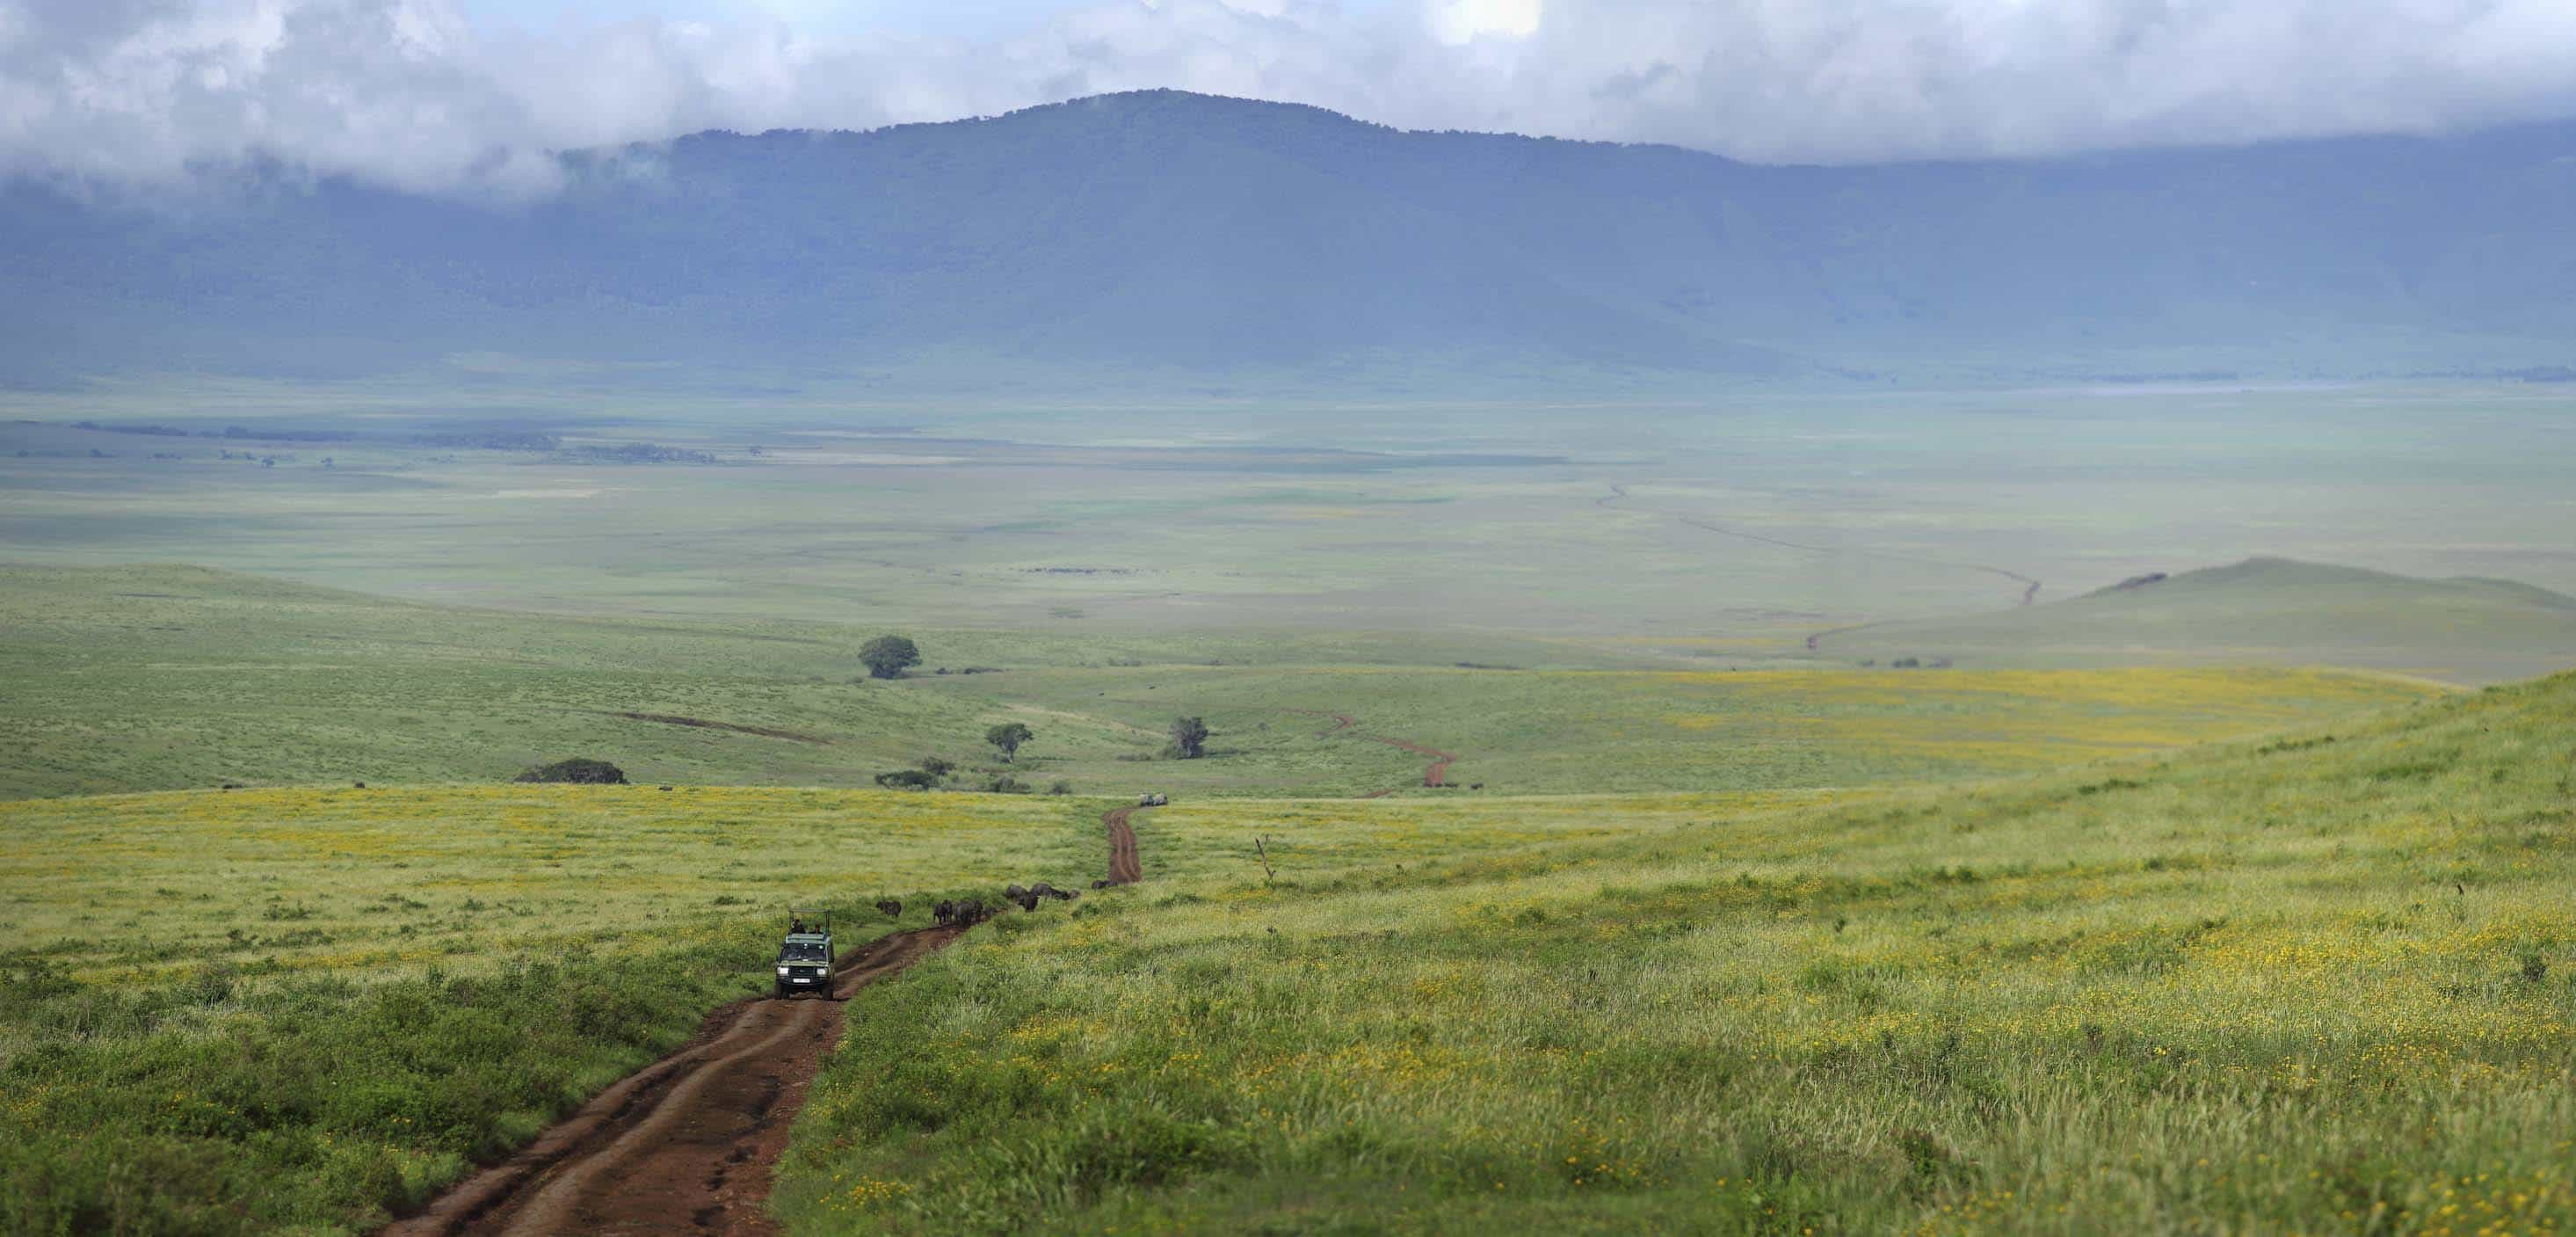 The Highlands Ngorongoro Crater